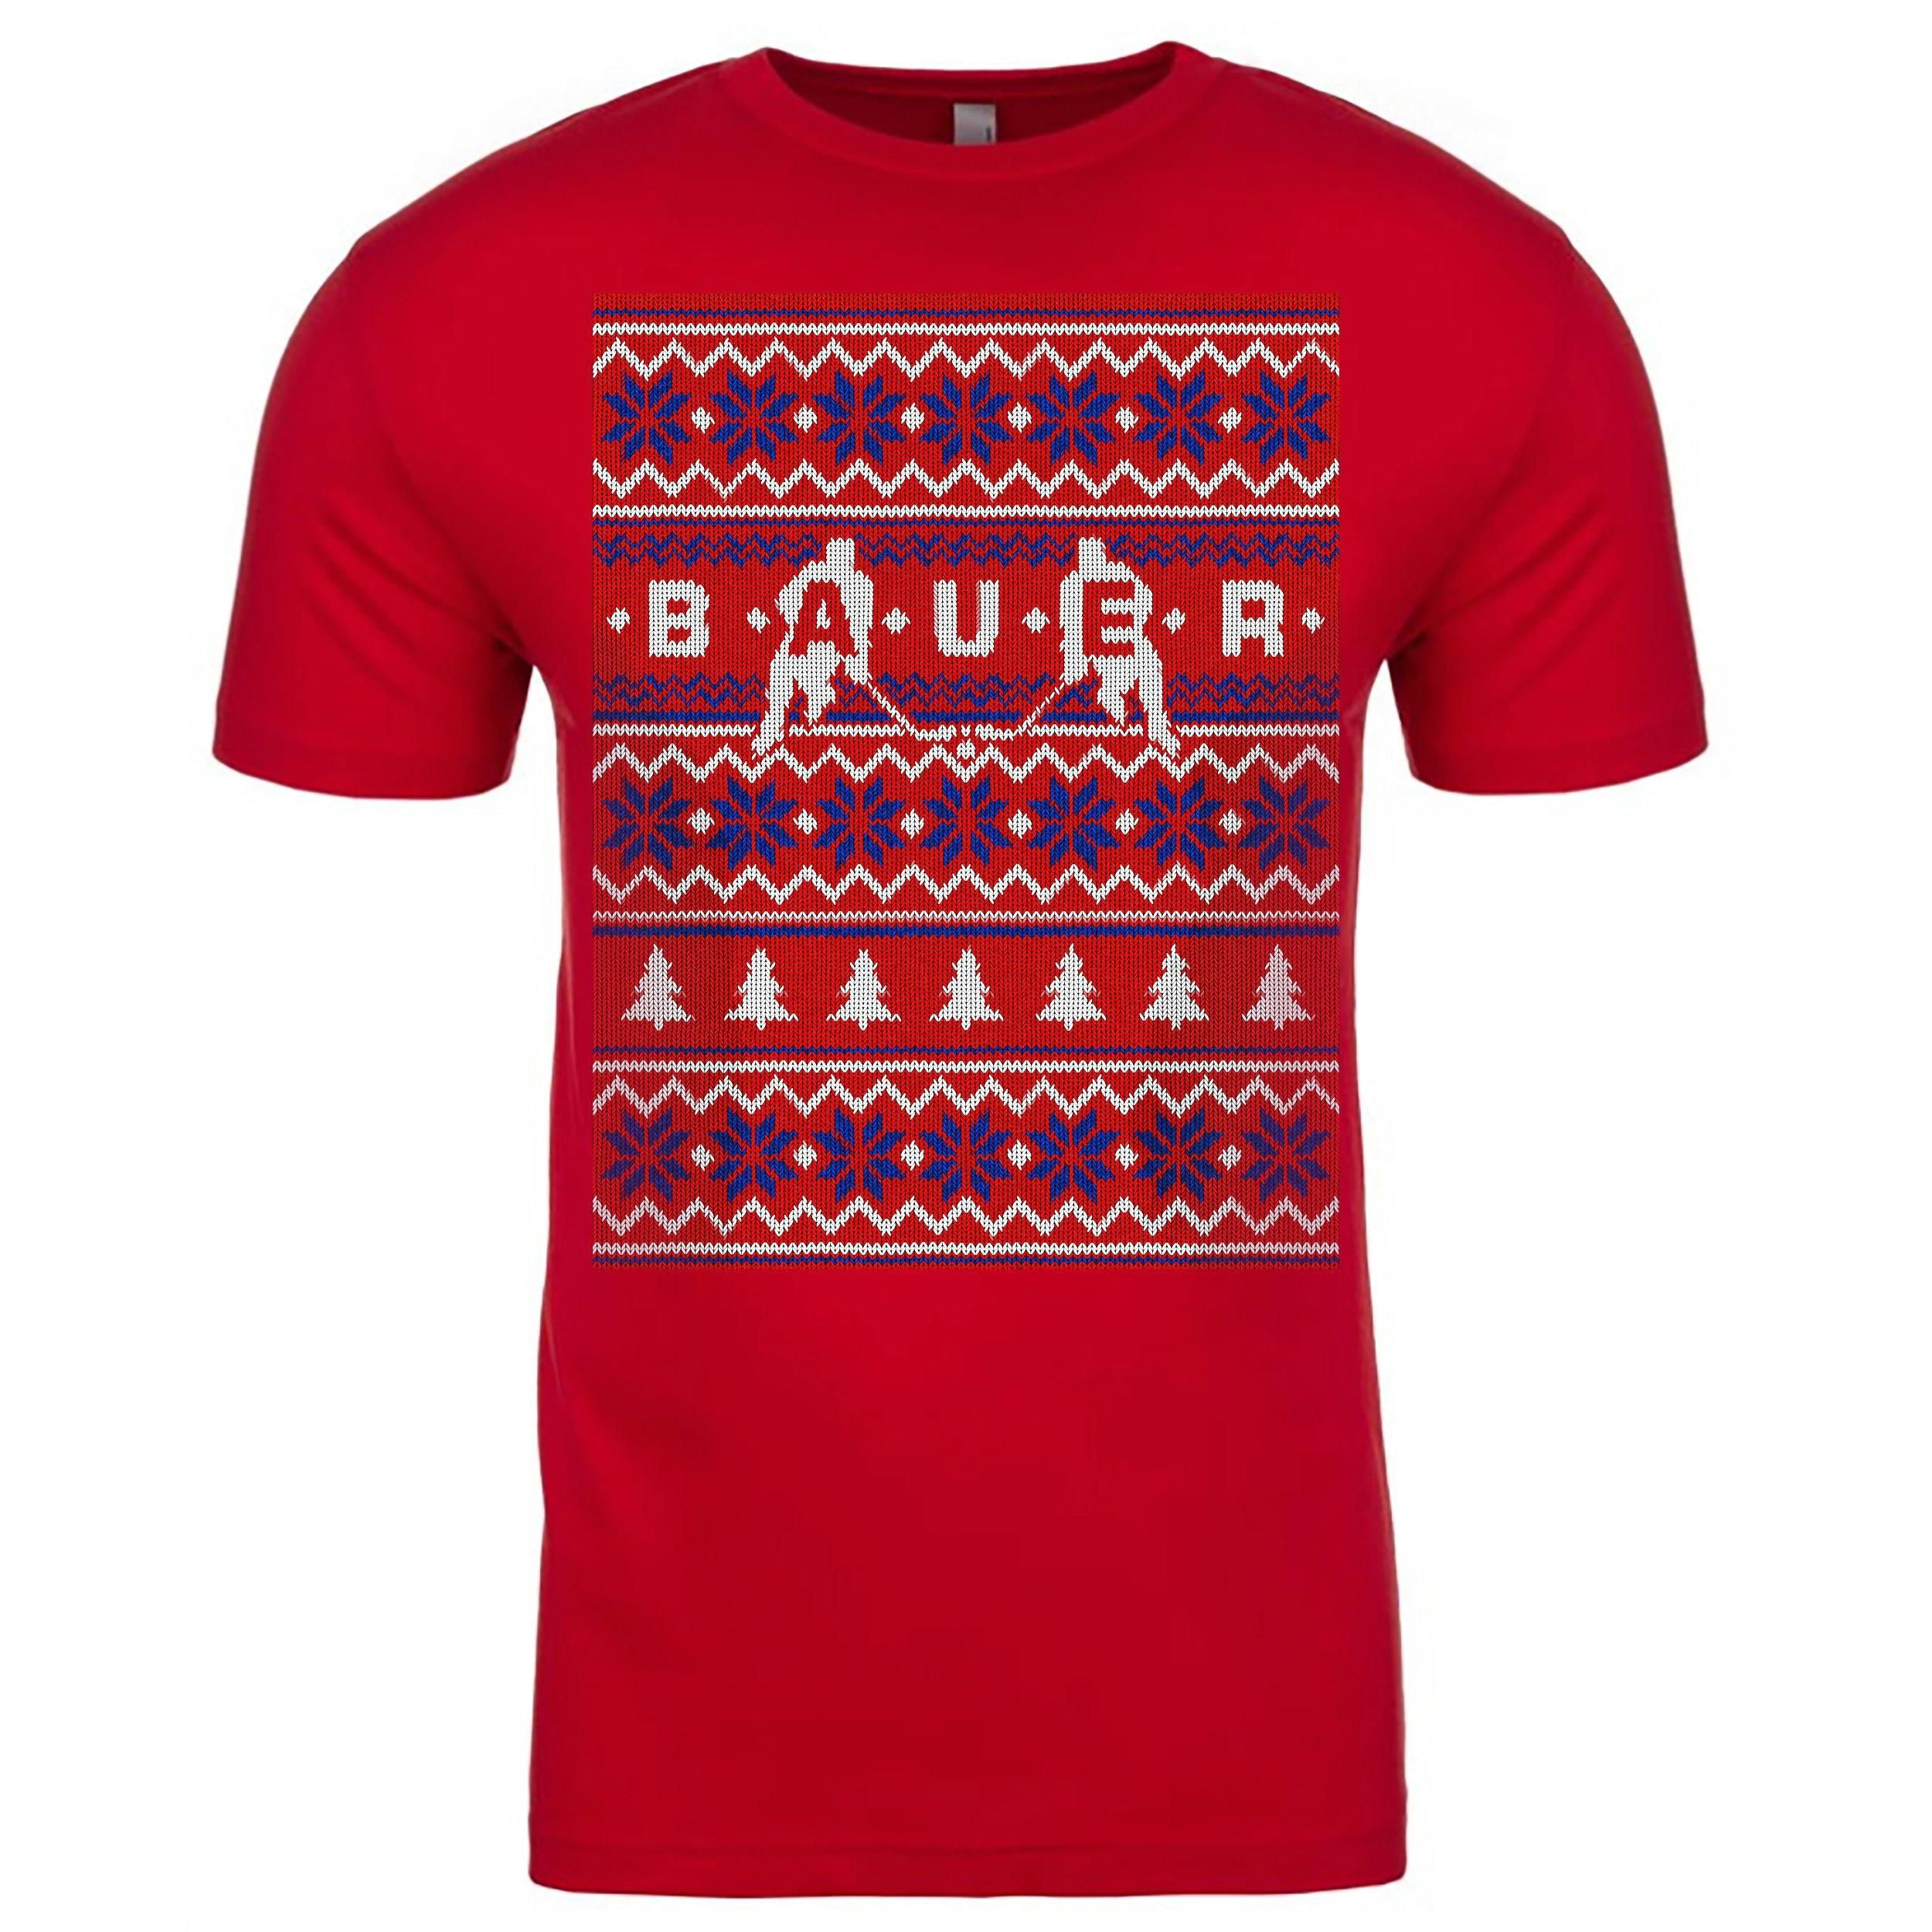 Bauer Short Sleeve Tee - Holiday Sweater Senior,,Размер M